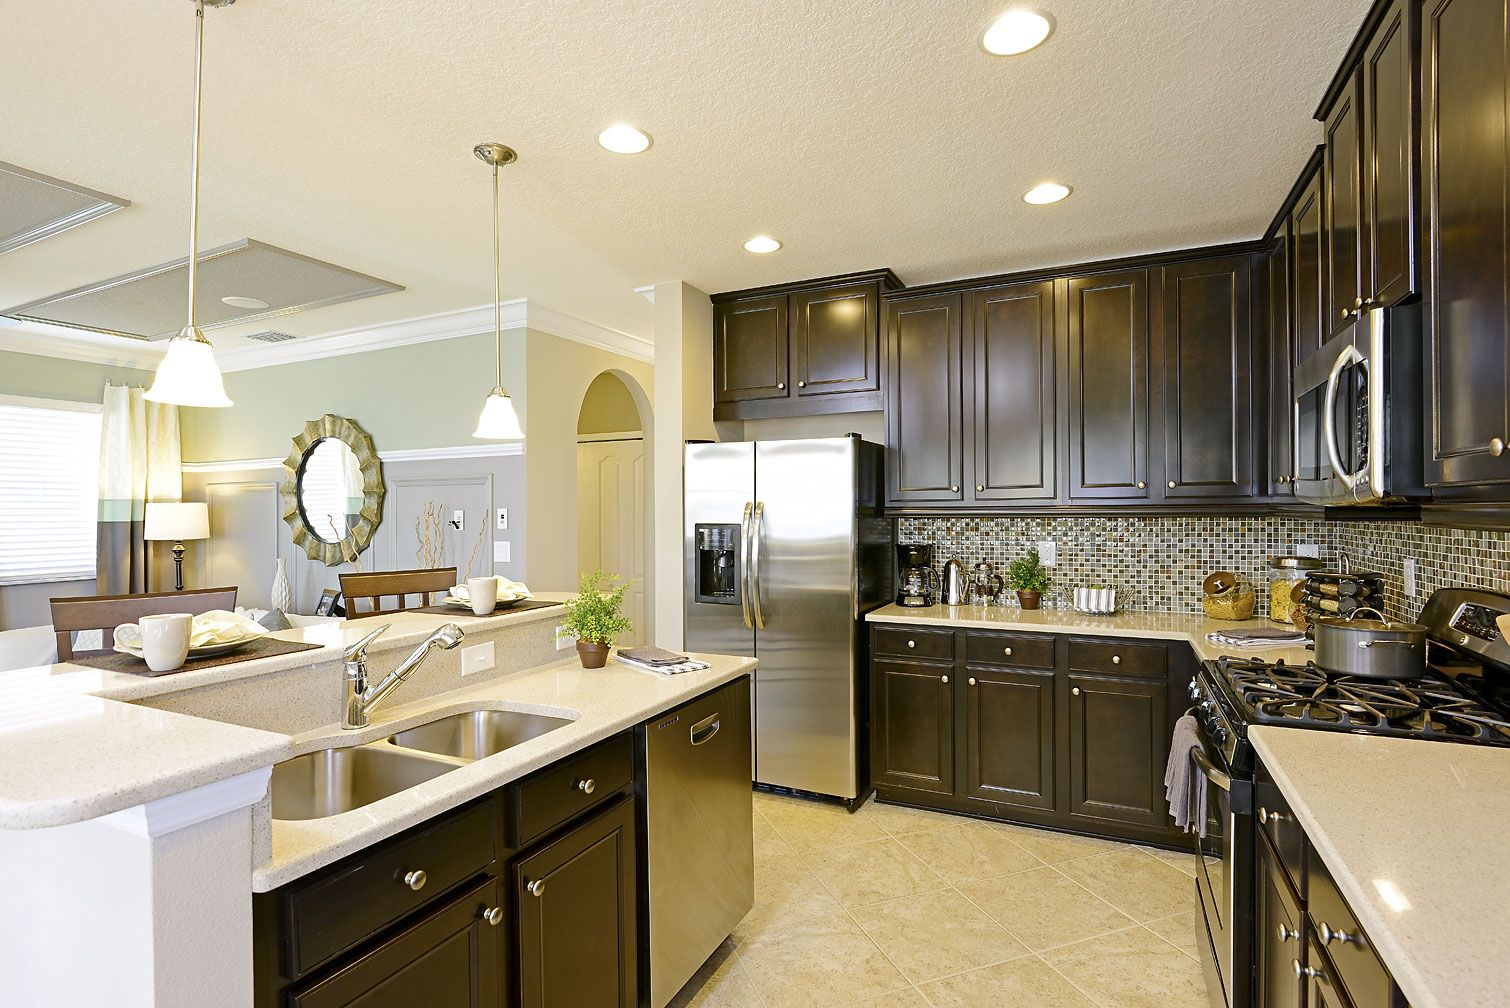 K Hovnanian Home Designs Part - 31: Spacious Kitchen From K. Hovnanian Homes: Brightwater At FishHawk Ranch